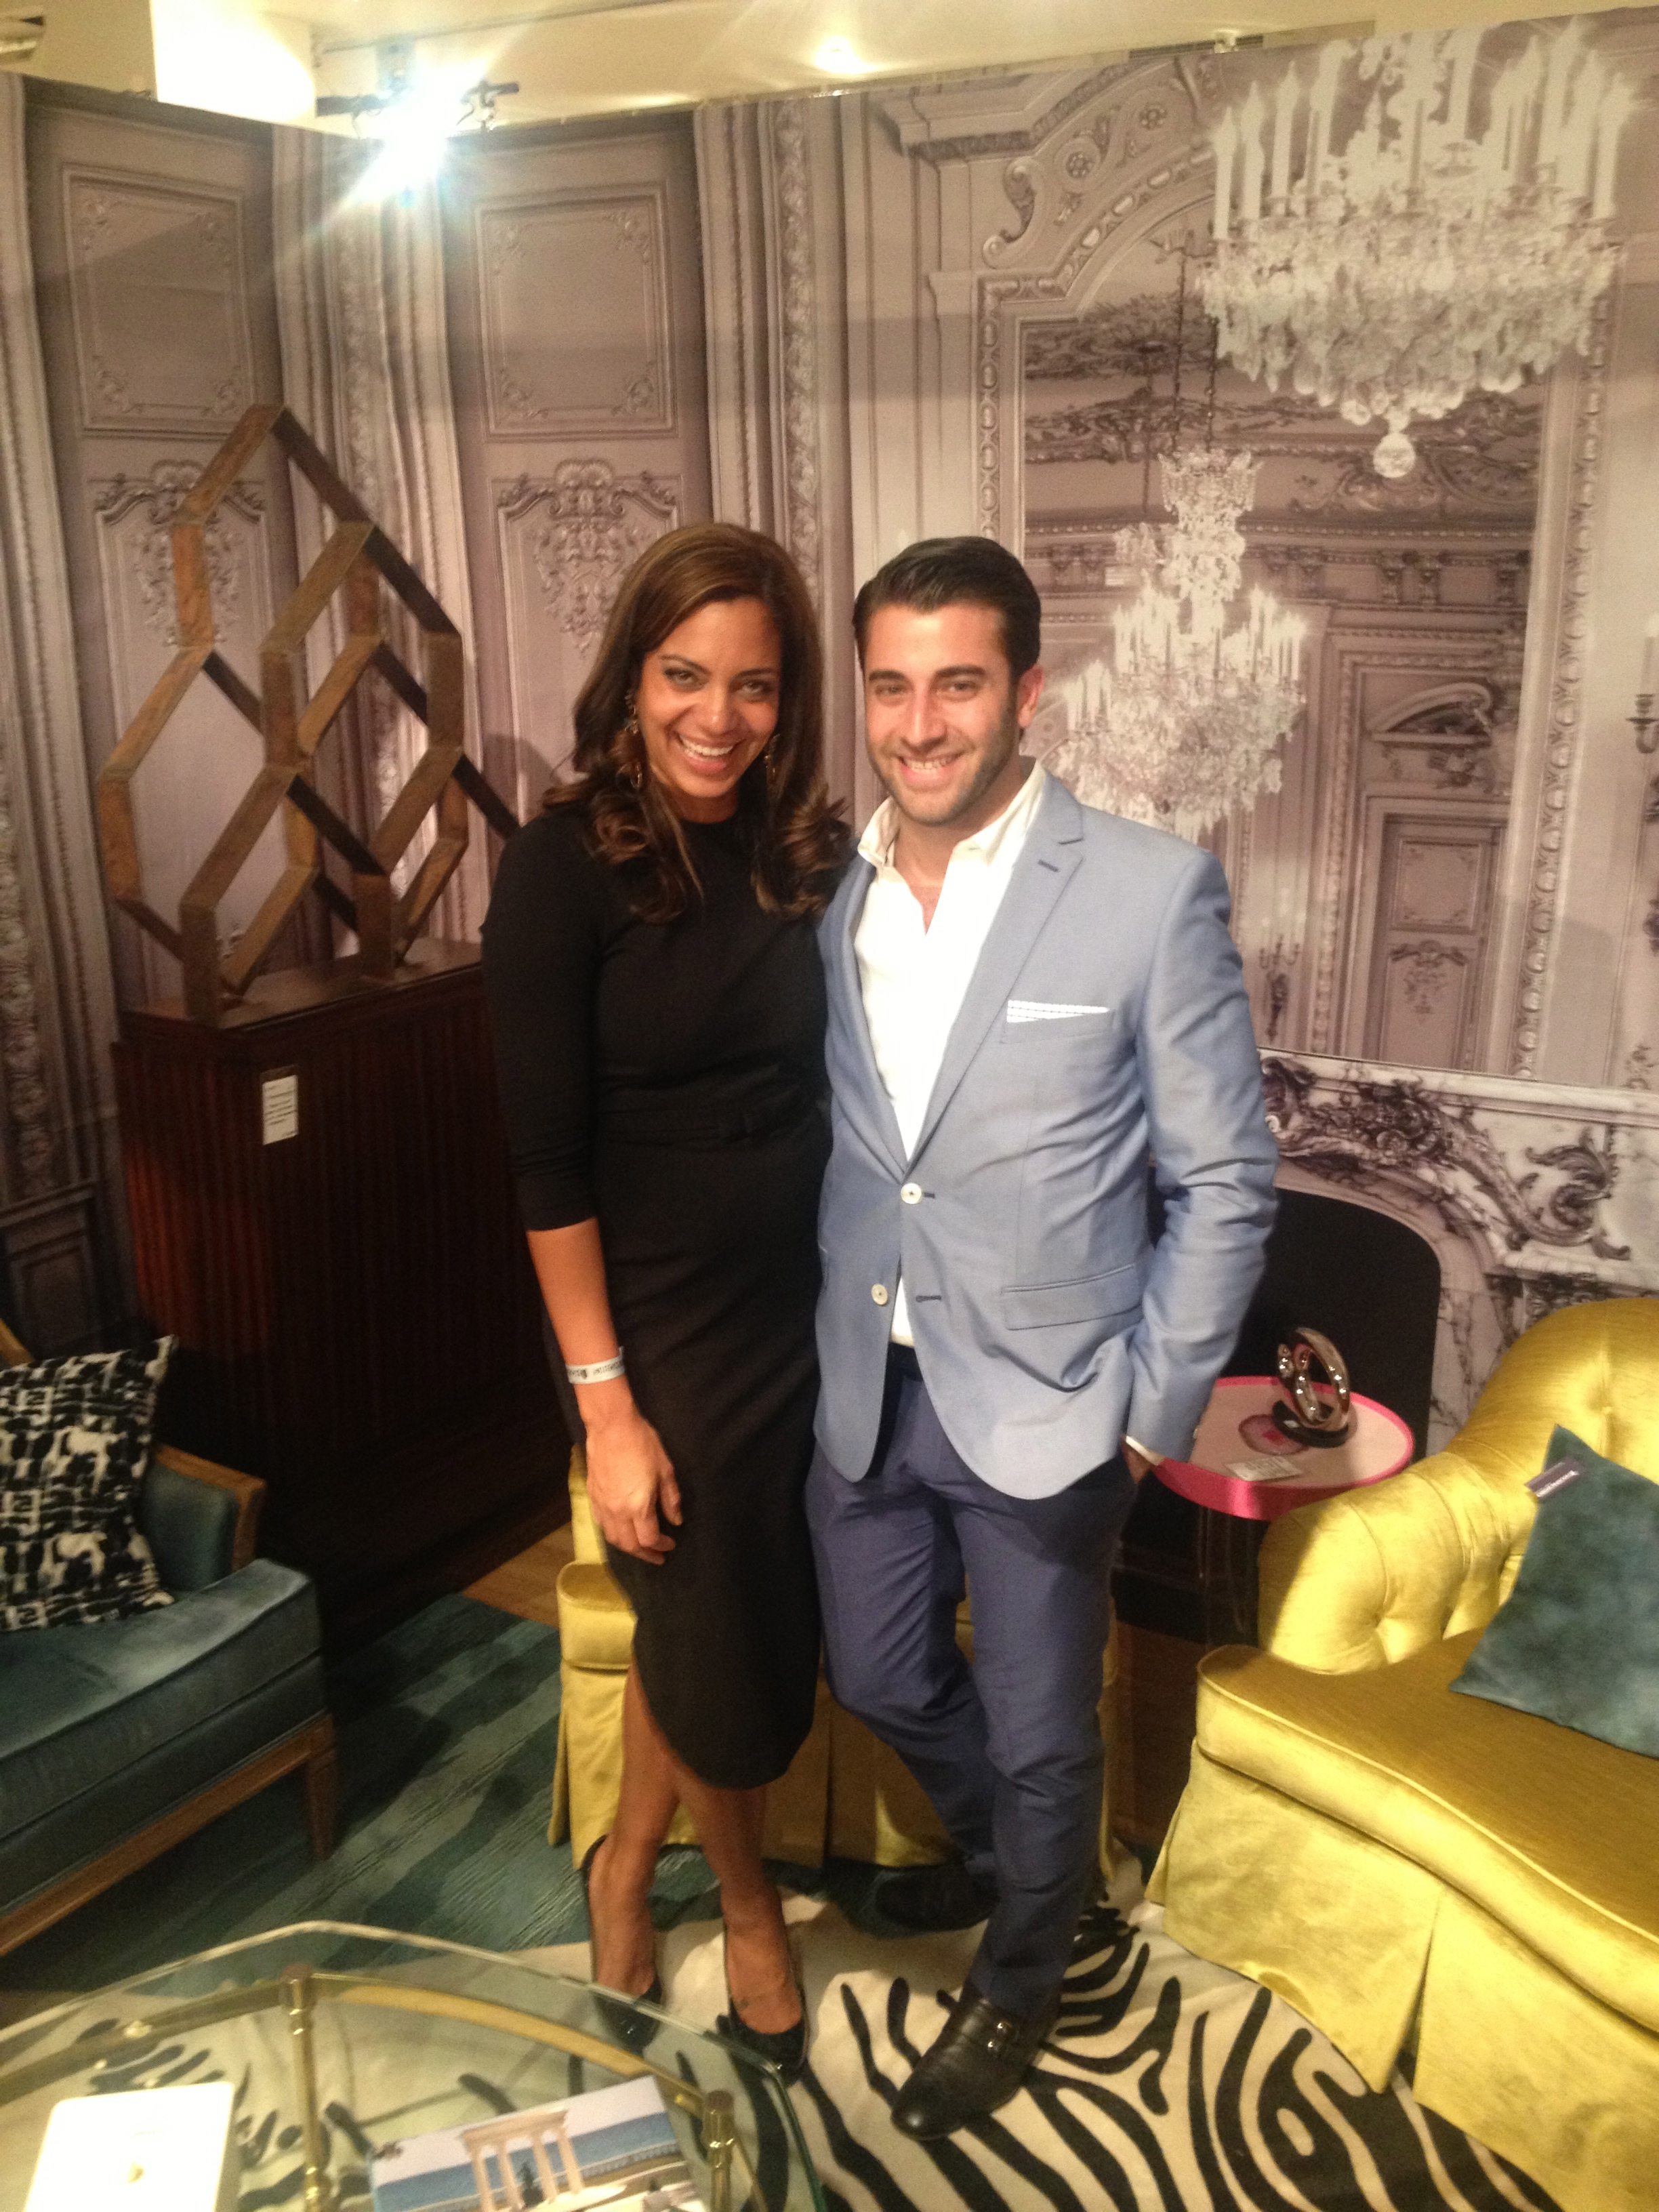 Antonino Buzzetta akaMr Chic. His room was to DIE for! When can I move in?